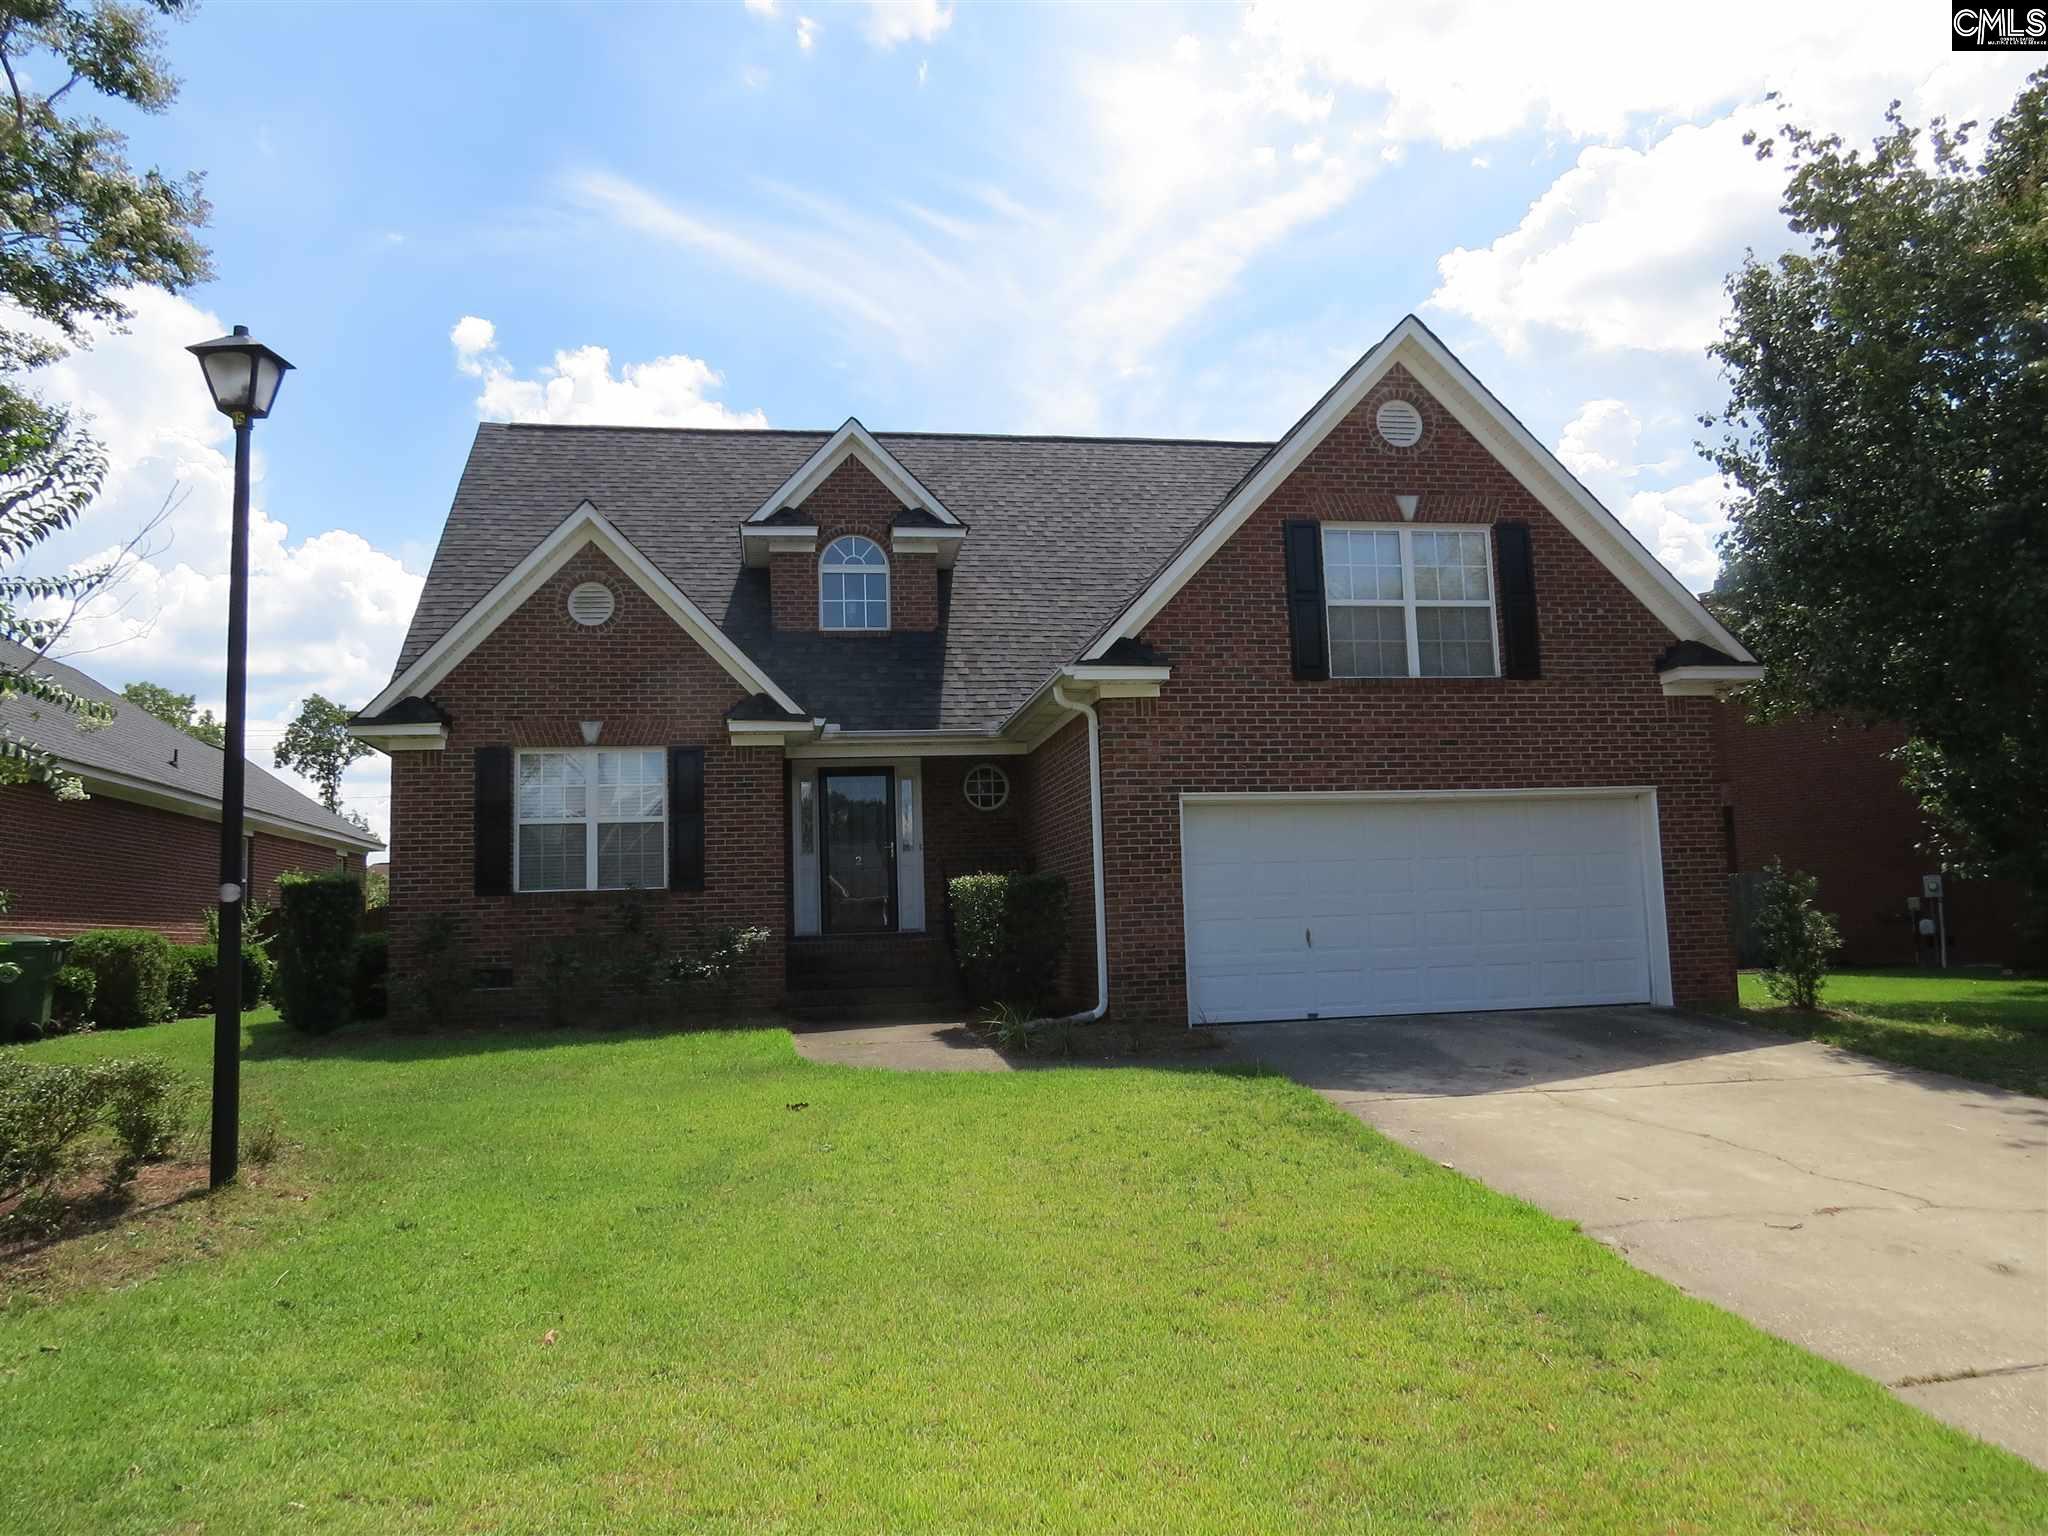 2 Holly Thorn Columbia, SC 29229